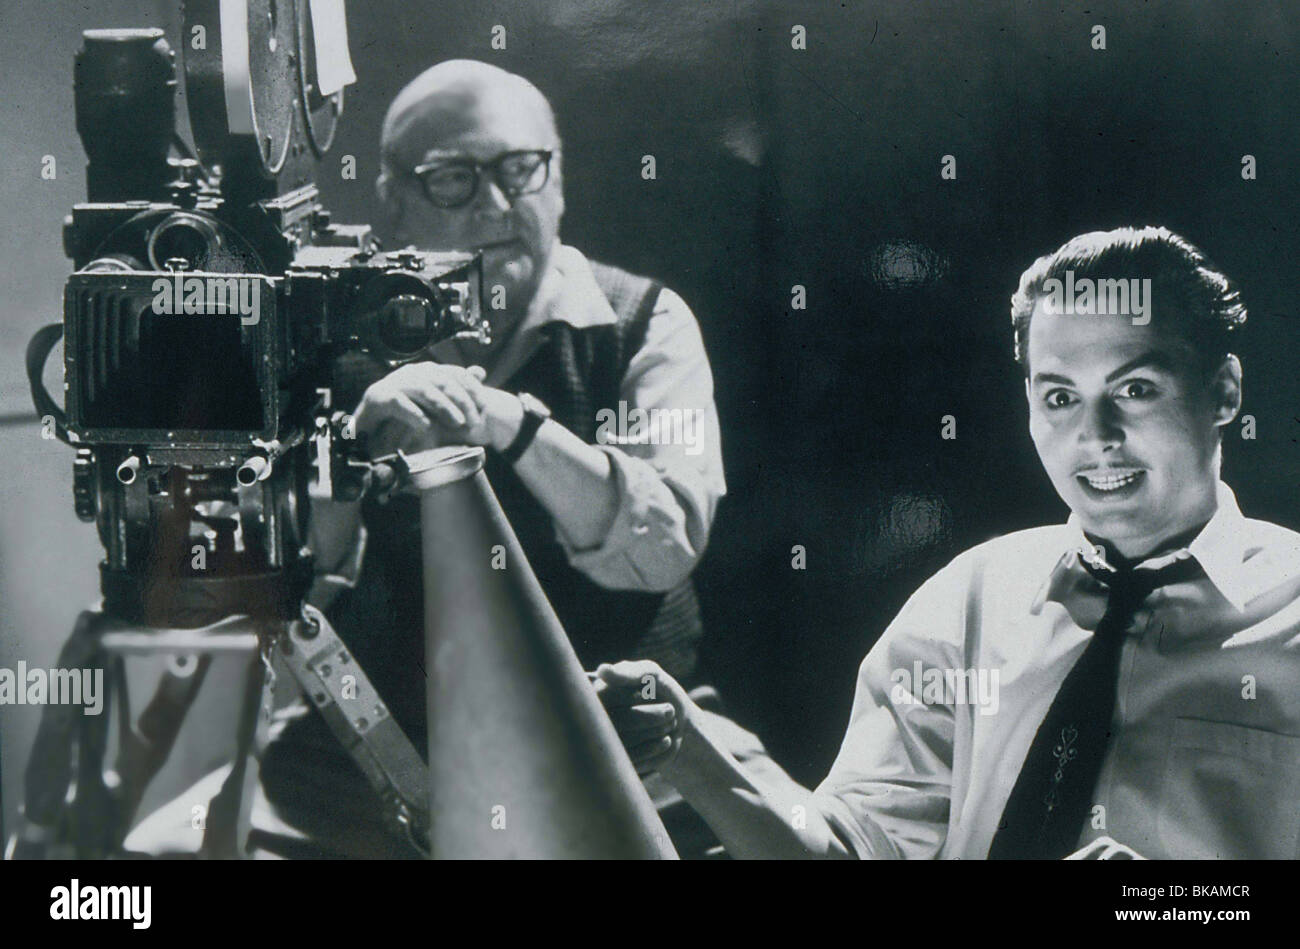 ED WOOD (1994) NORMAN ALDEN, JOHNNY DEPP EDW 023 - Stock Image